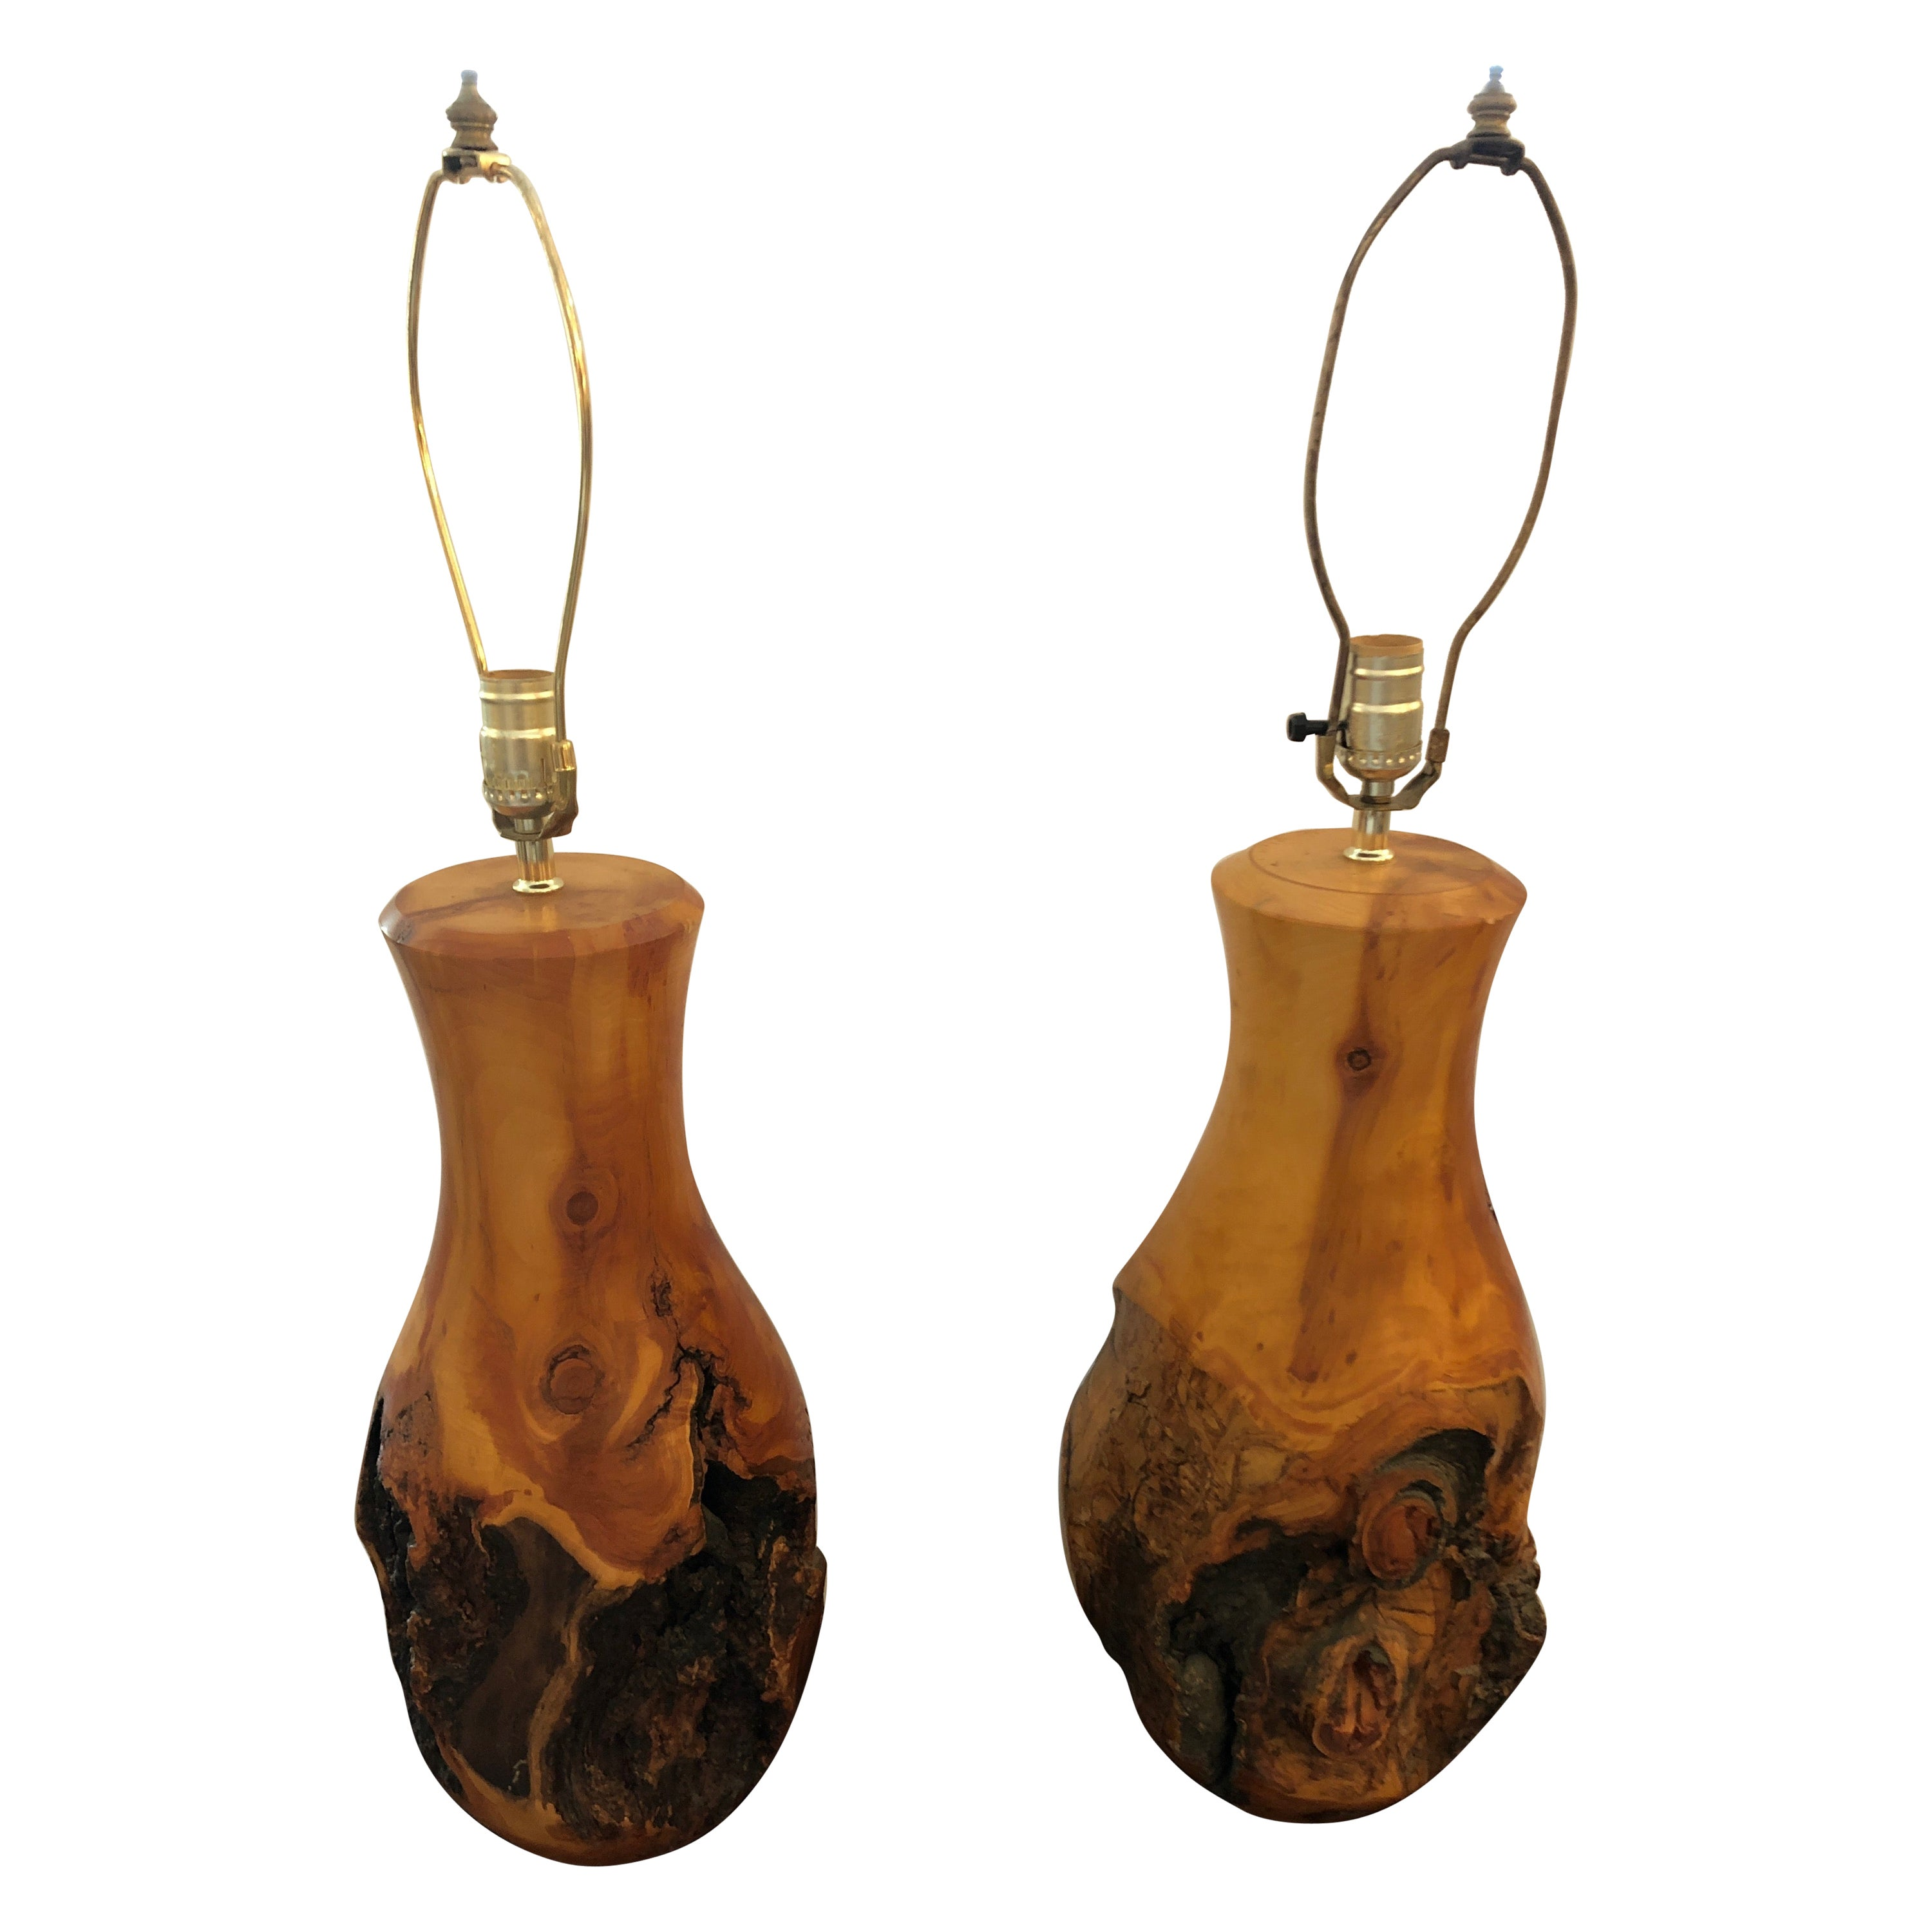 Sensational Organic Pair of Knotty Sculptural Wood Table Lamps